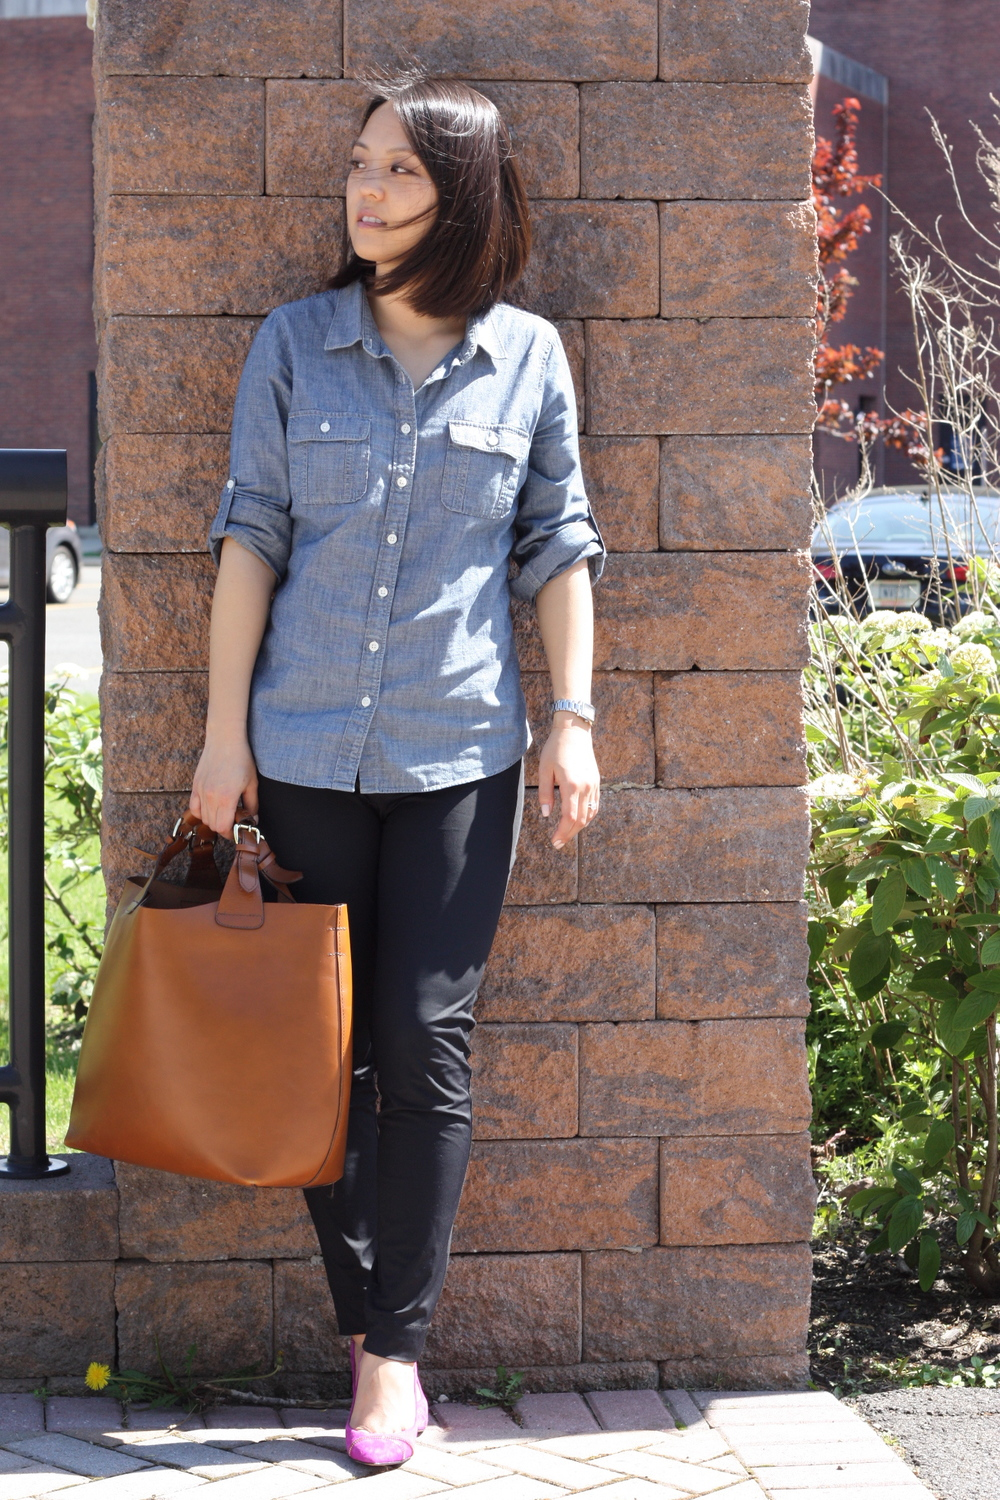 chambray shirt: jcrew, pants: from a boutique in korea, bag: zara, shoes: enzo angiolini